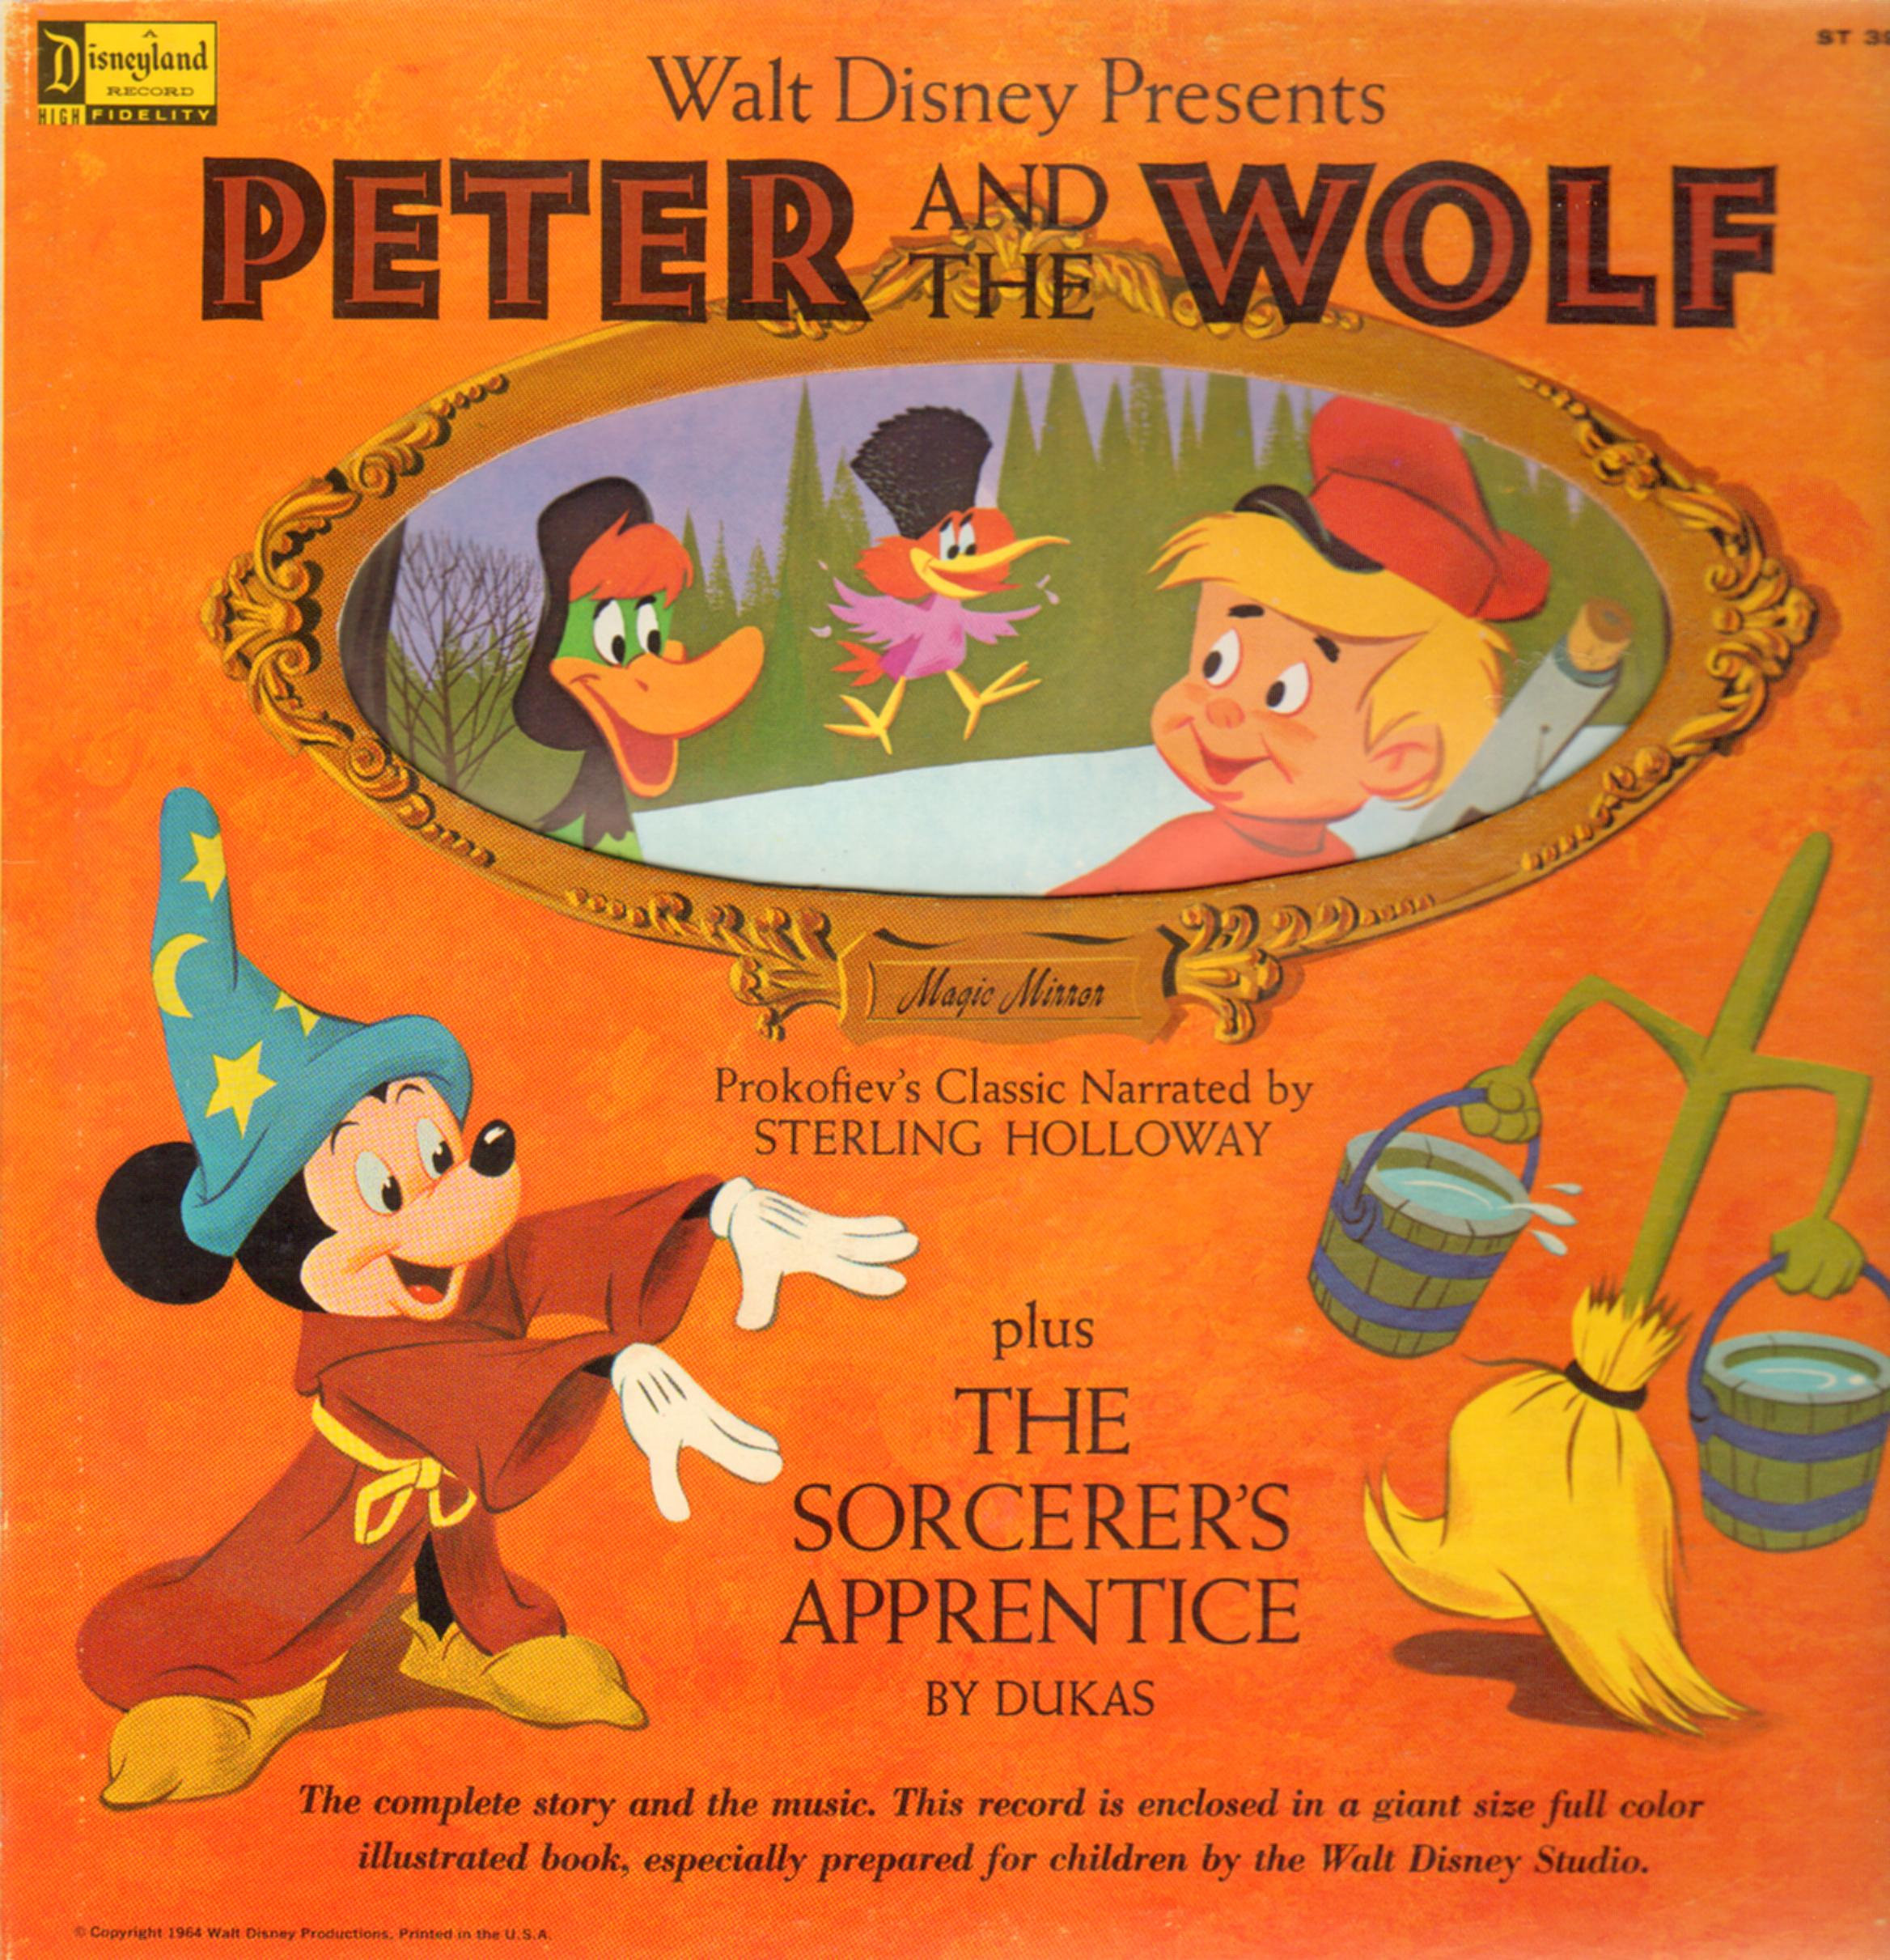 Walt Disney Presents Peter and the Wolf (plus The Sorcerer's Apprentice)